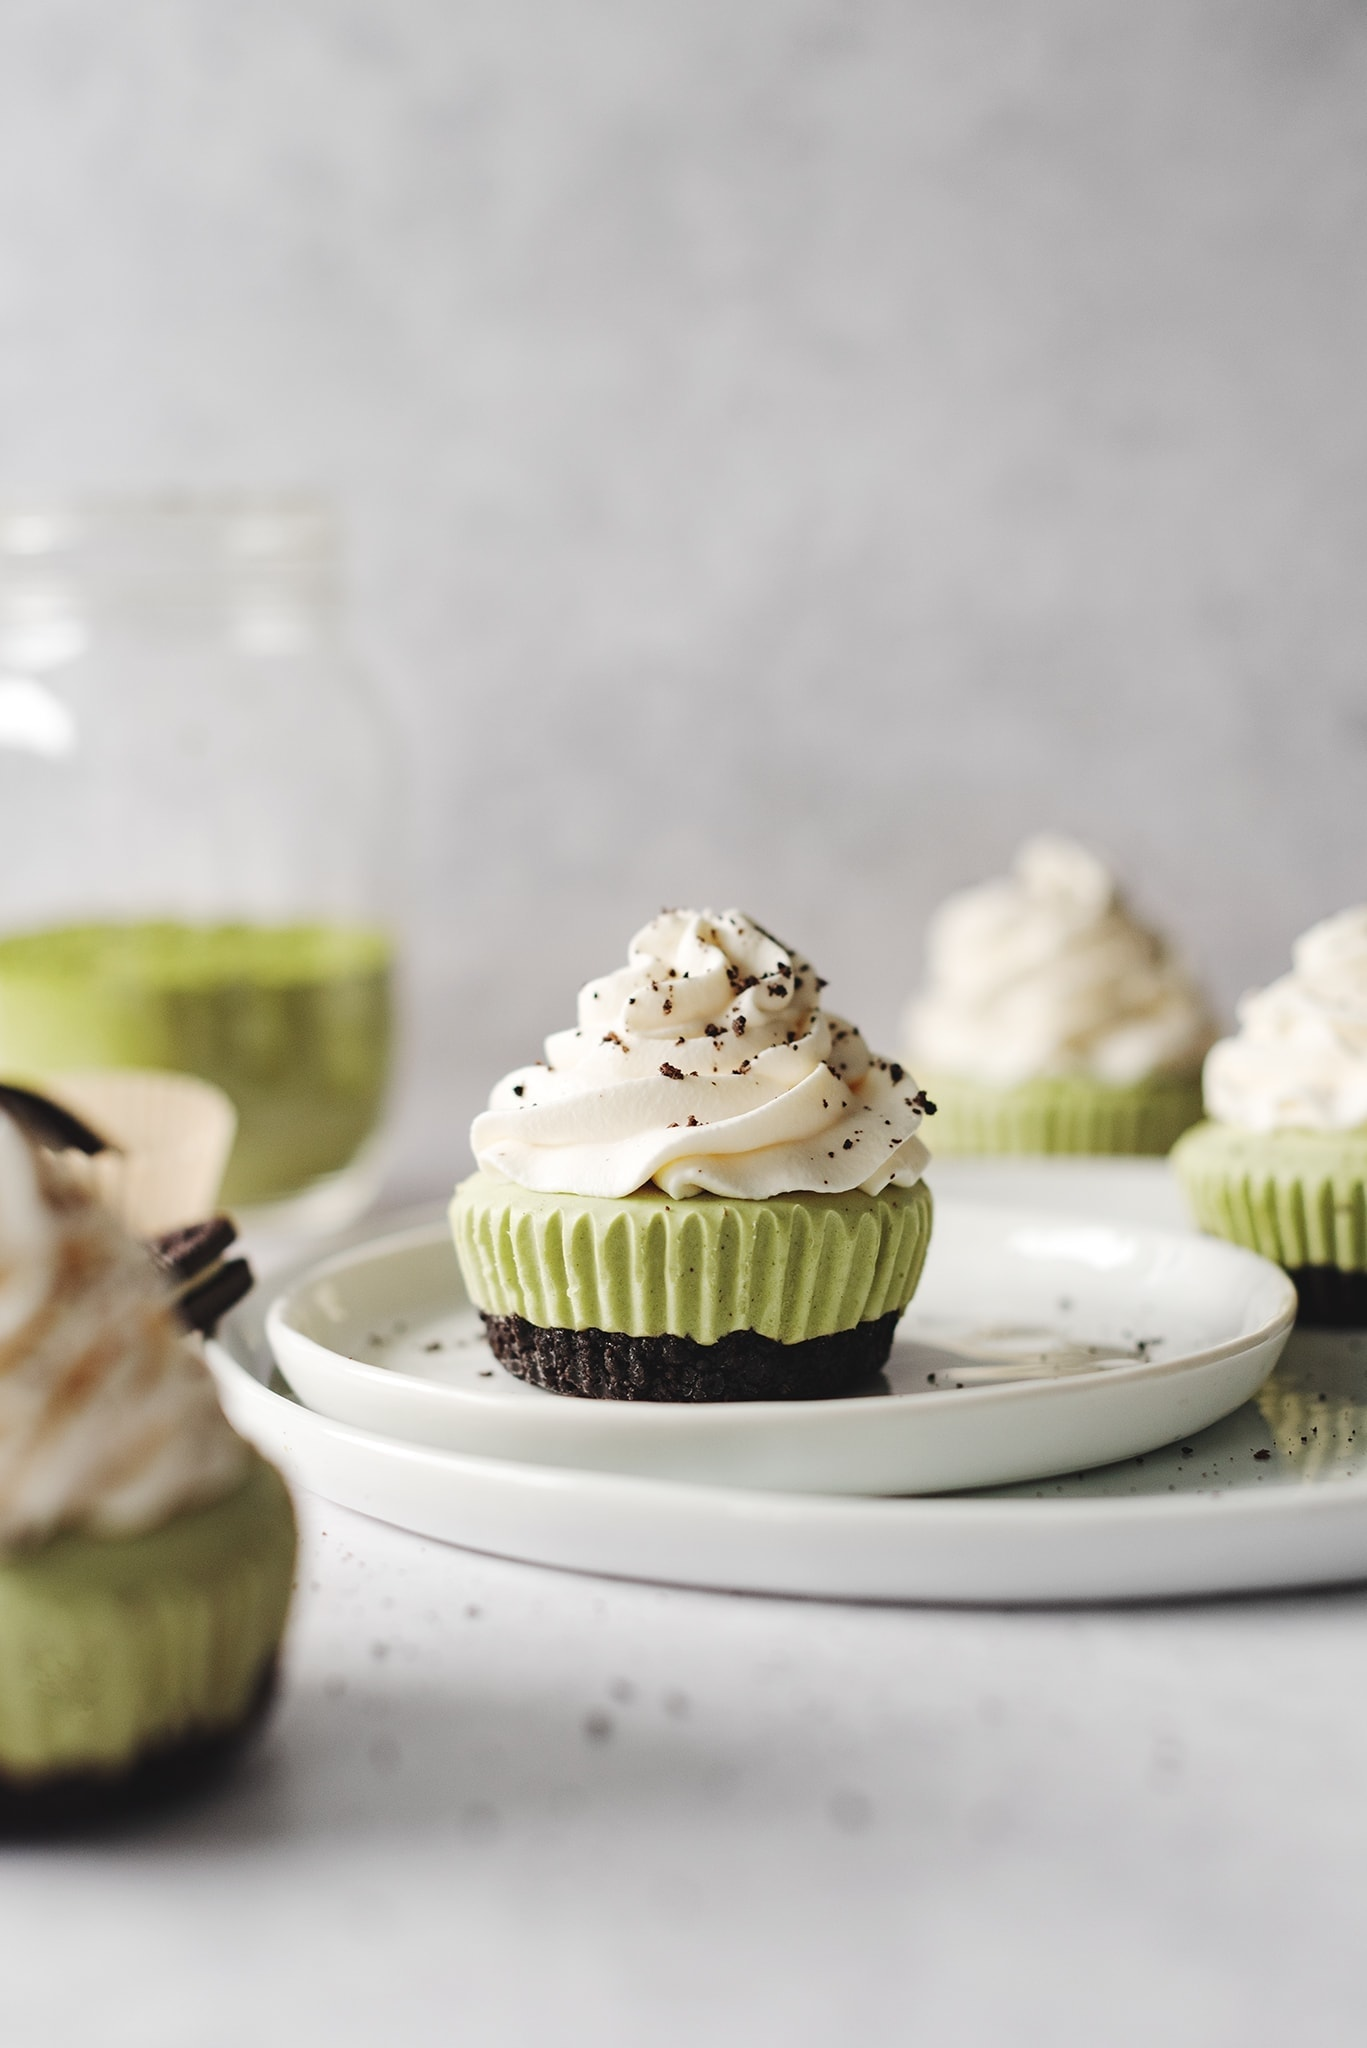 No-bake matcha cheesecake topped with whipped cream